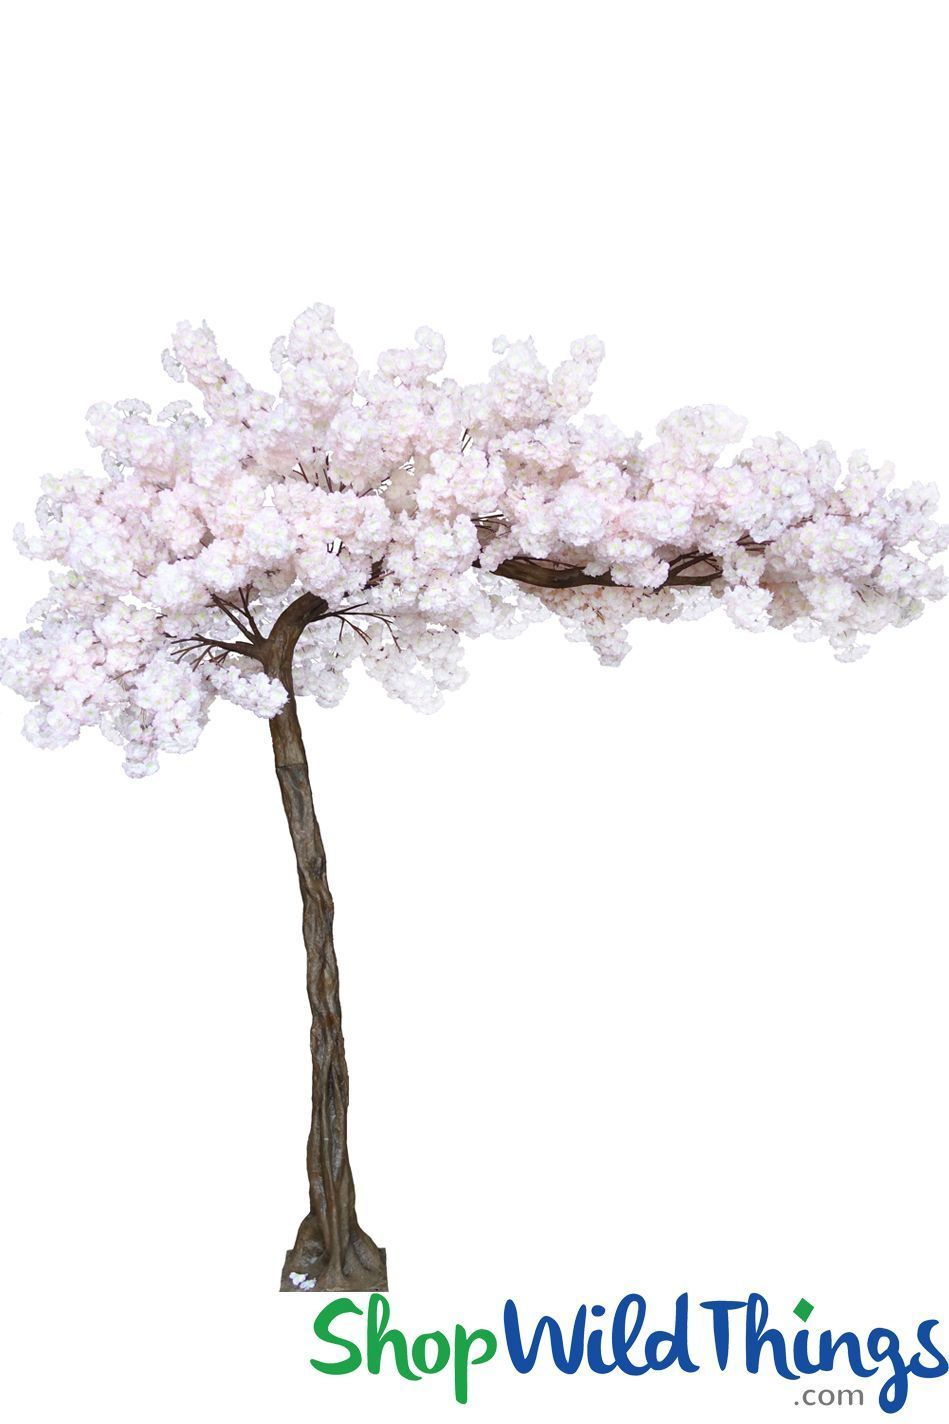 Coming Soon Flowering Cherry Blossom Soft Pink 10 5 Feet Tall X 8 Feet Wide Sideswept Create Arch Using 2 Pink Dogwood Flowering Trees Blossom